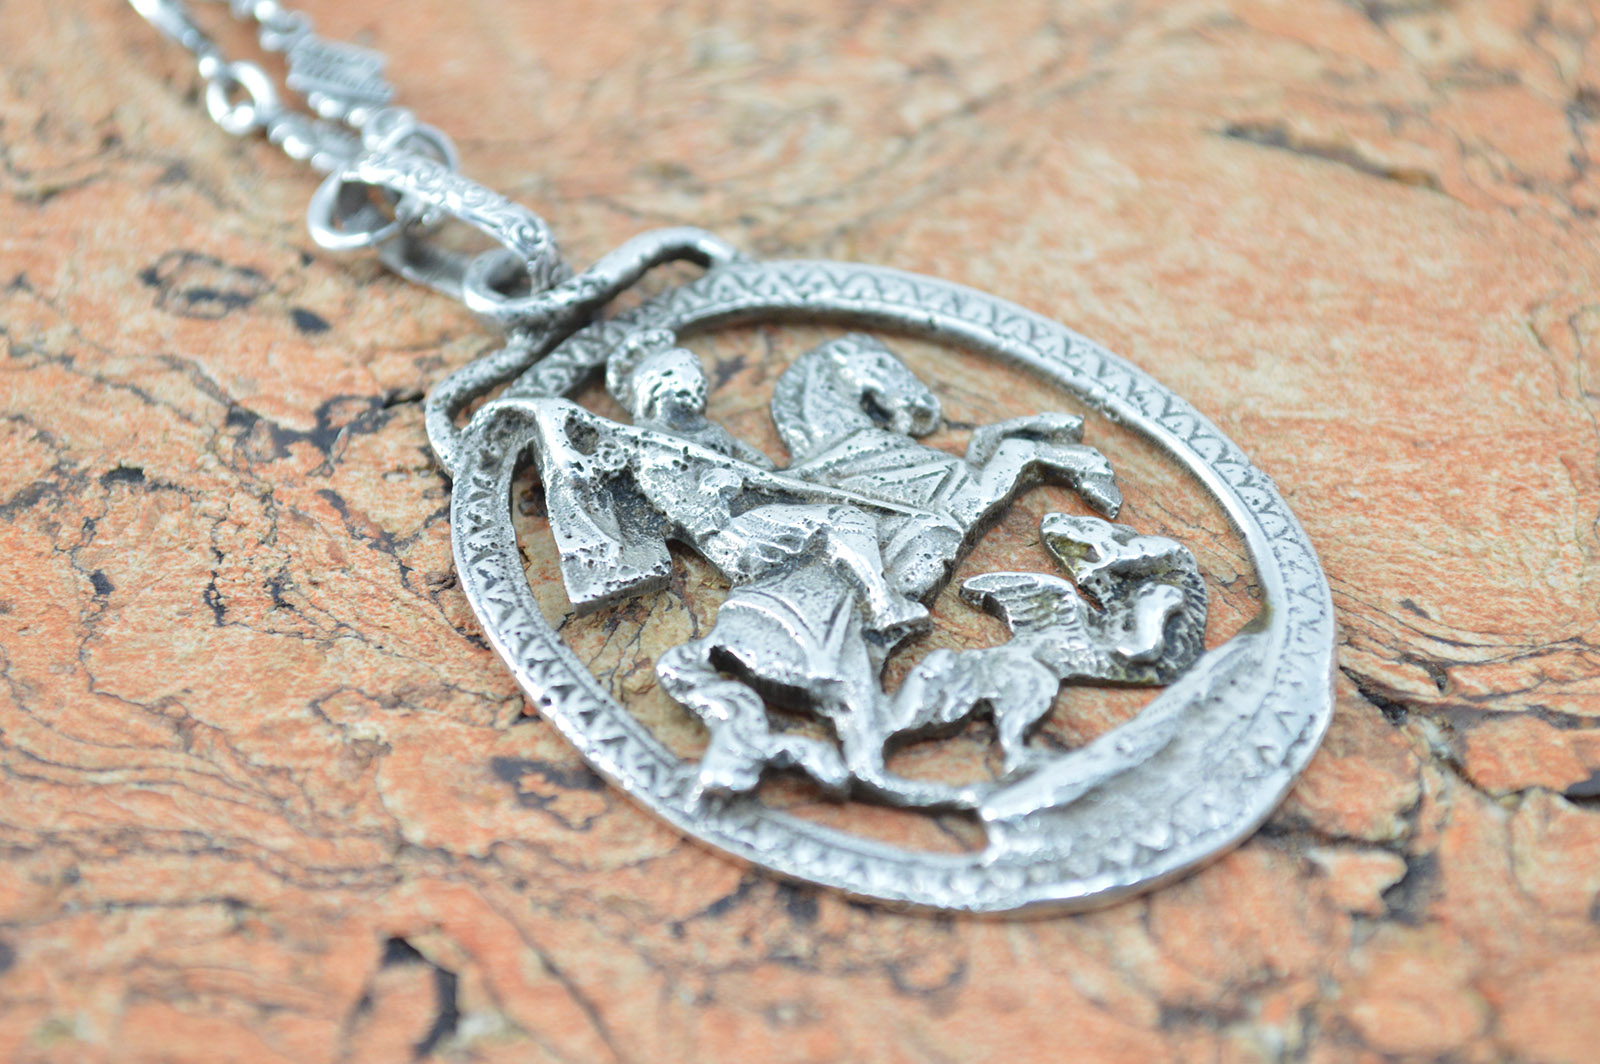 Saint george pendant necklace sterling silver 474g property room saint george pendant necklace sterling silver 474g aloadofball Image collections